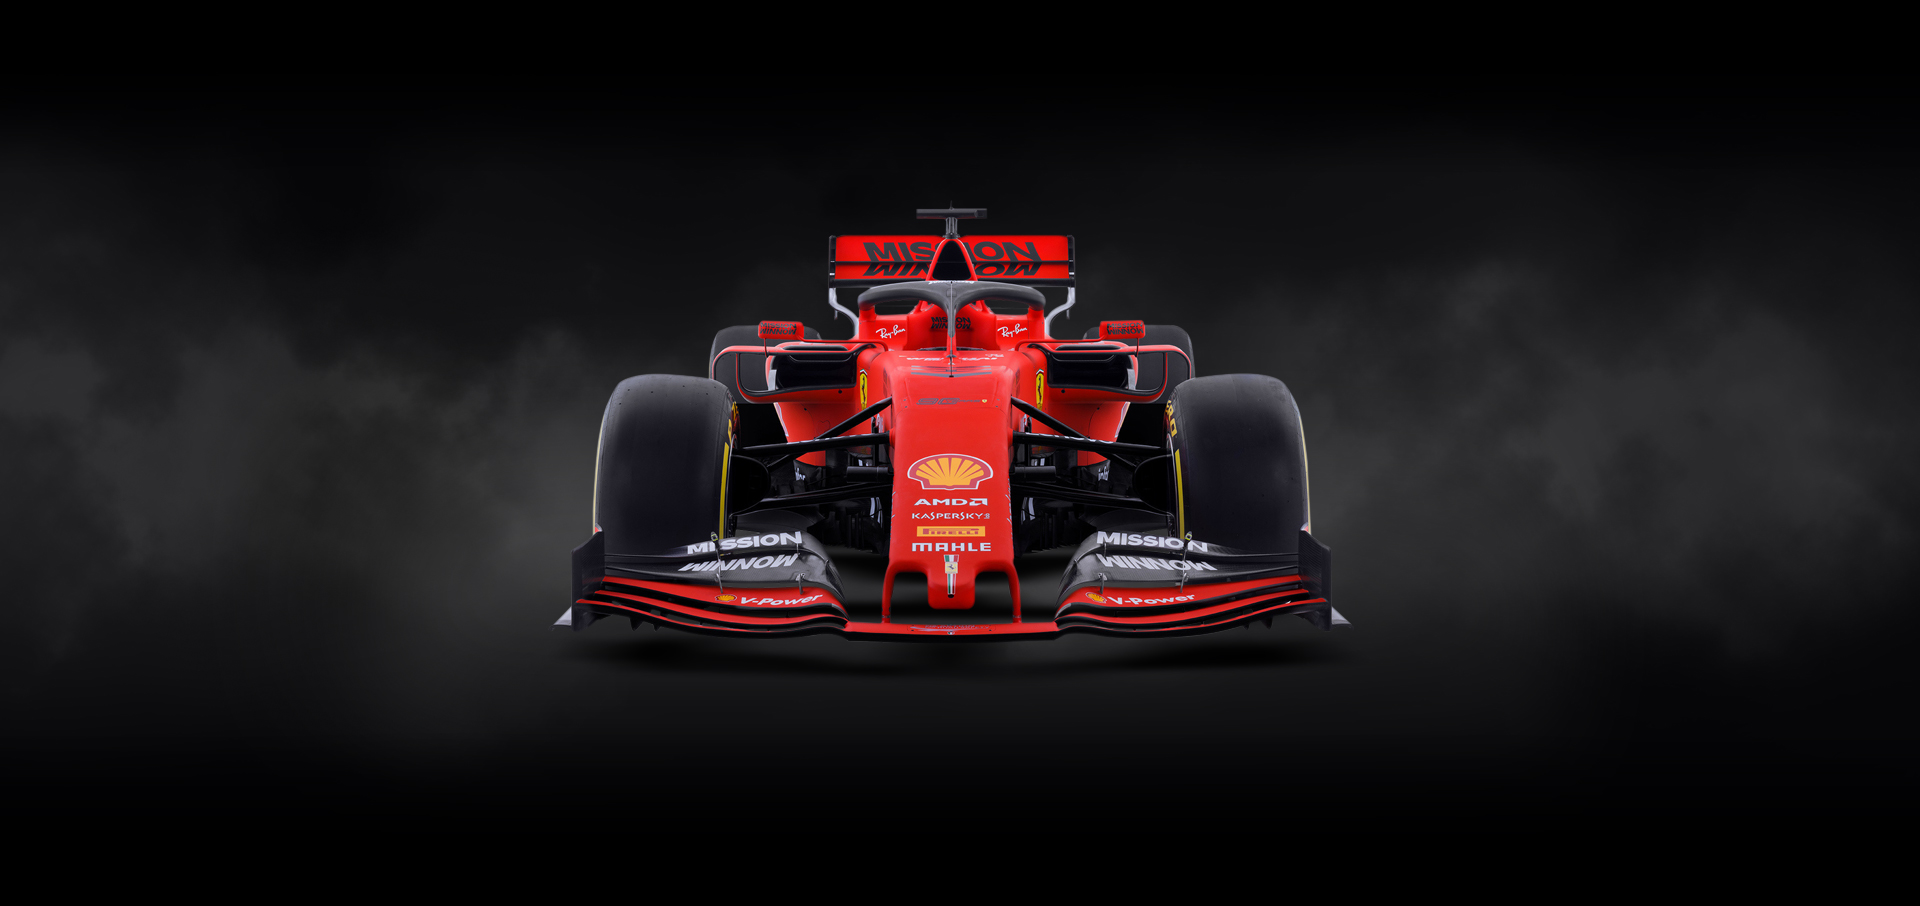 F1 Ferrari Wallpapers Posted By Samantha Simpson